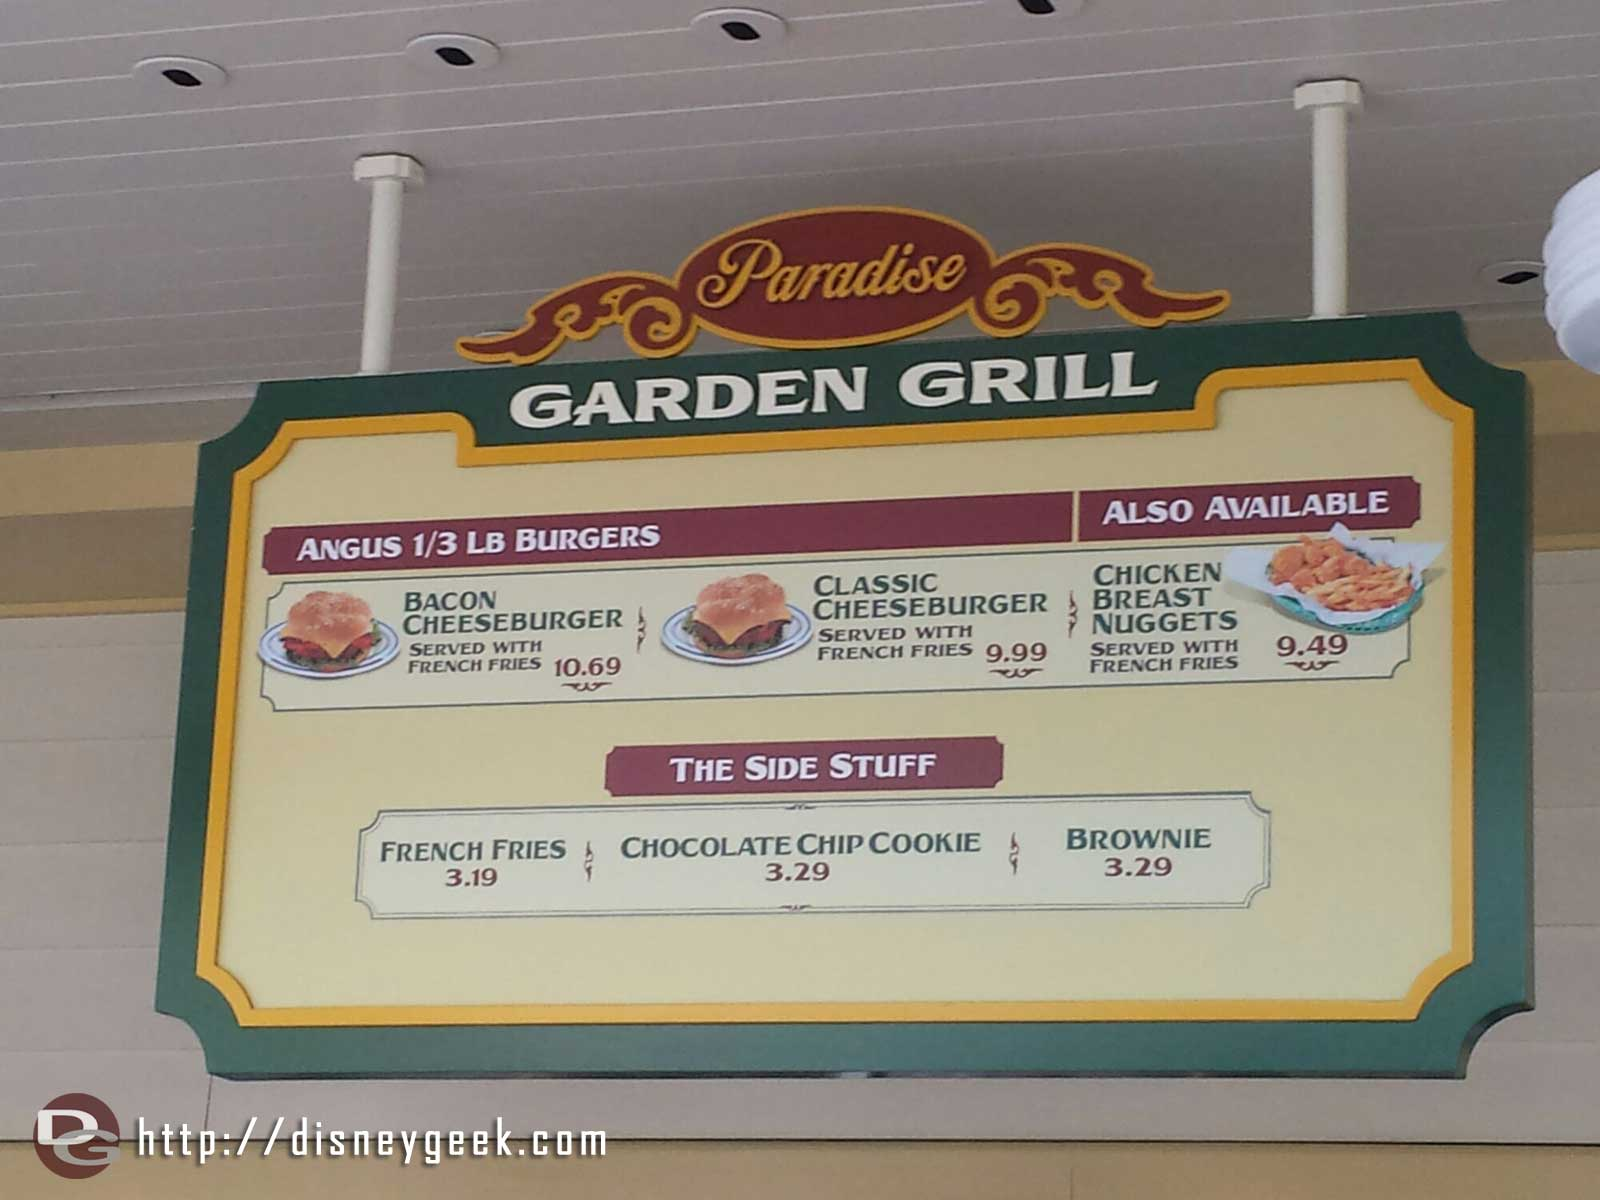 Taste Pilots is closed.  Burgers & chicken nuggets have moved to the Paradise Garden Grill